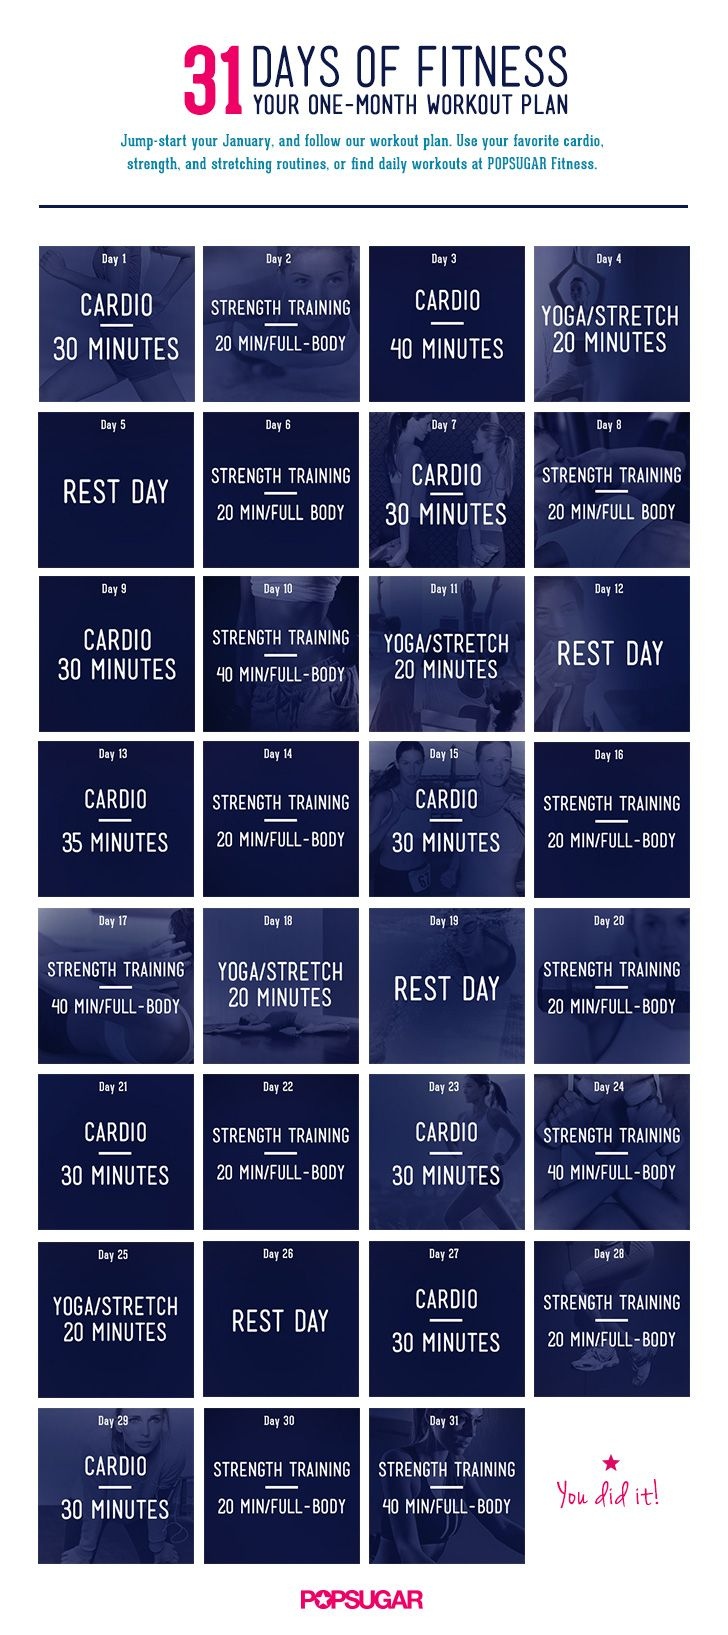 Workout Plan For a Month